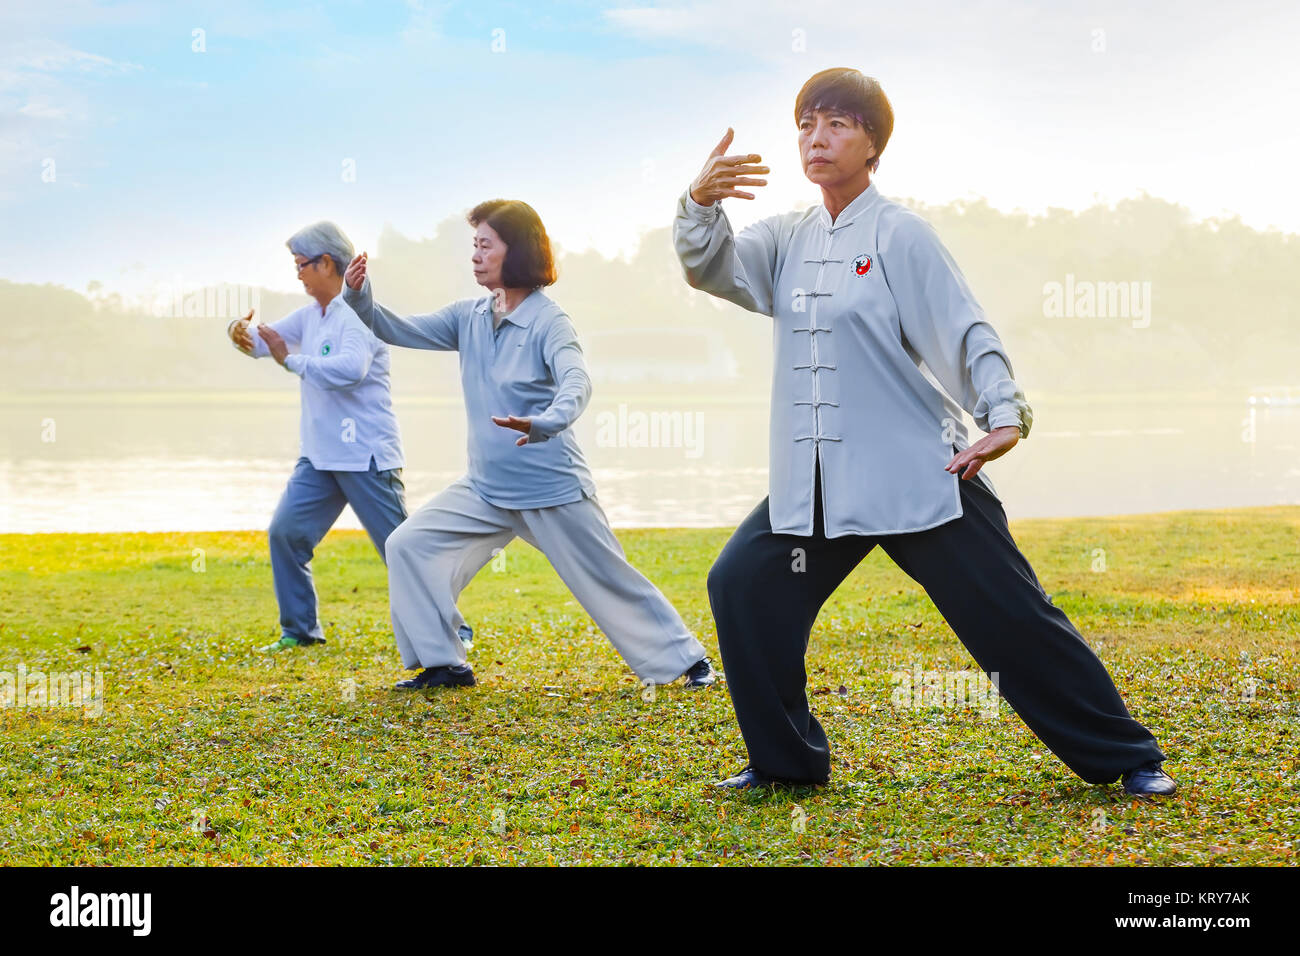 BANGKOK, THAILAND - FEBRUARY 13, 2016: Unidentified group of people practice Tai Chi Chuan in a park - Stock Image